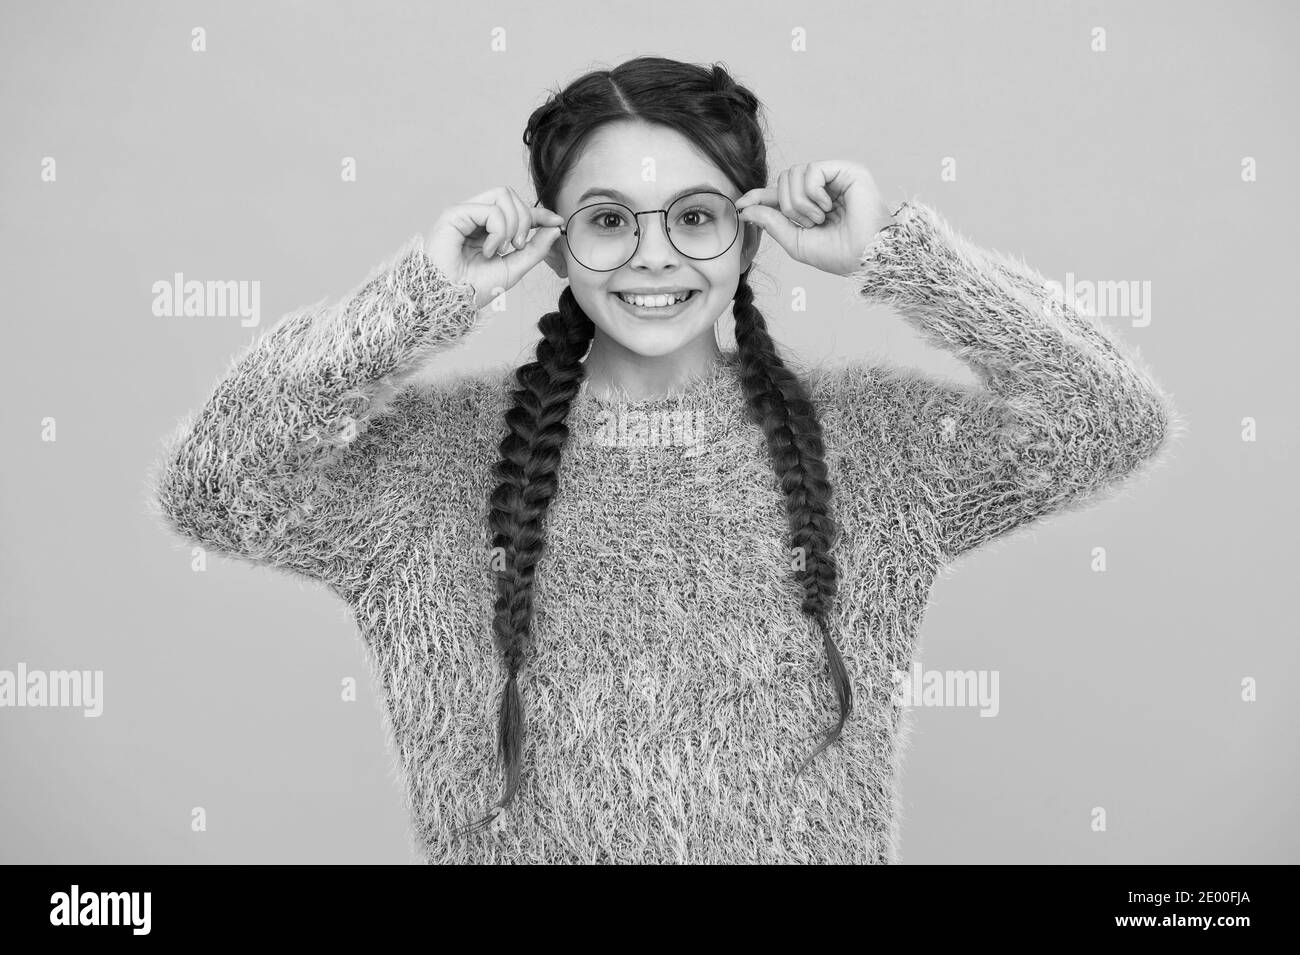 focus on what matters. cheerful teen has bad sight. Hair braided in braids. little beauty in glasses. happy childhood. small girl has nice smile. kid hairstyle fashion. smiling child with long hairdo. Stock Photo